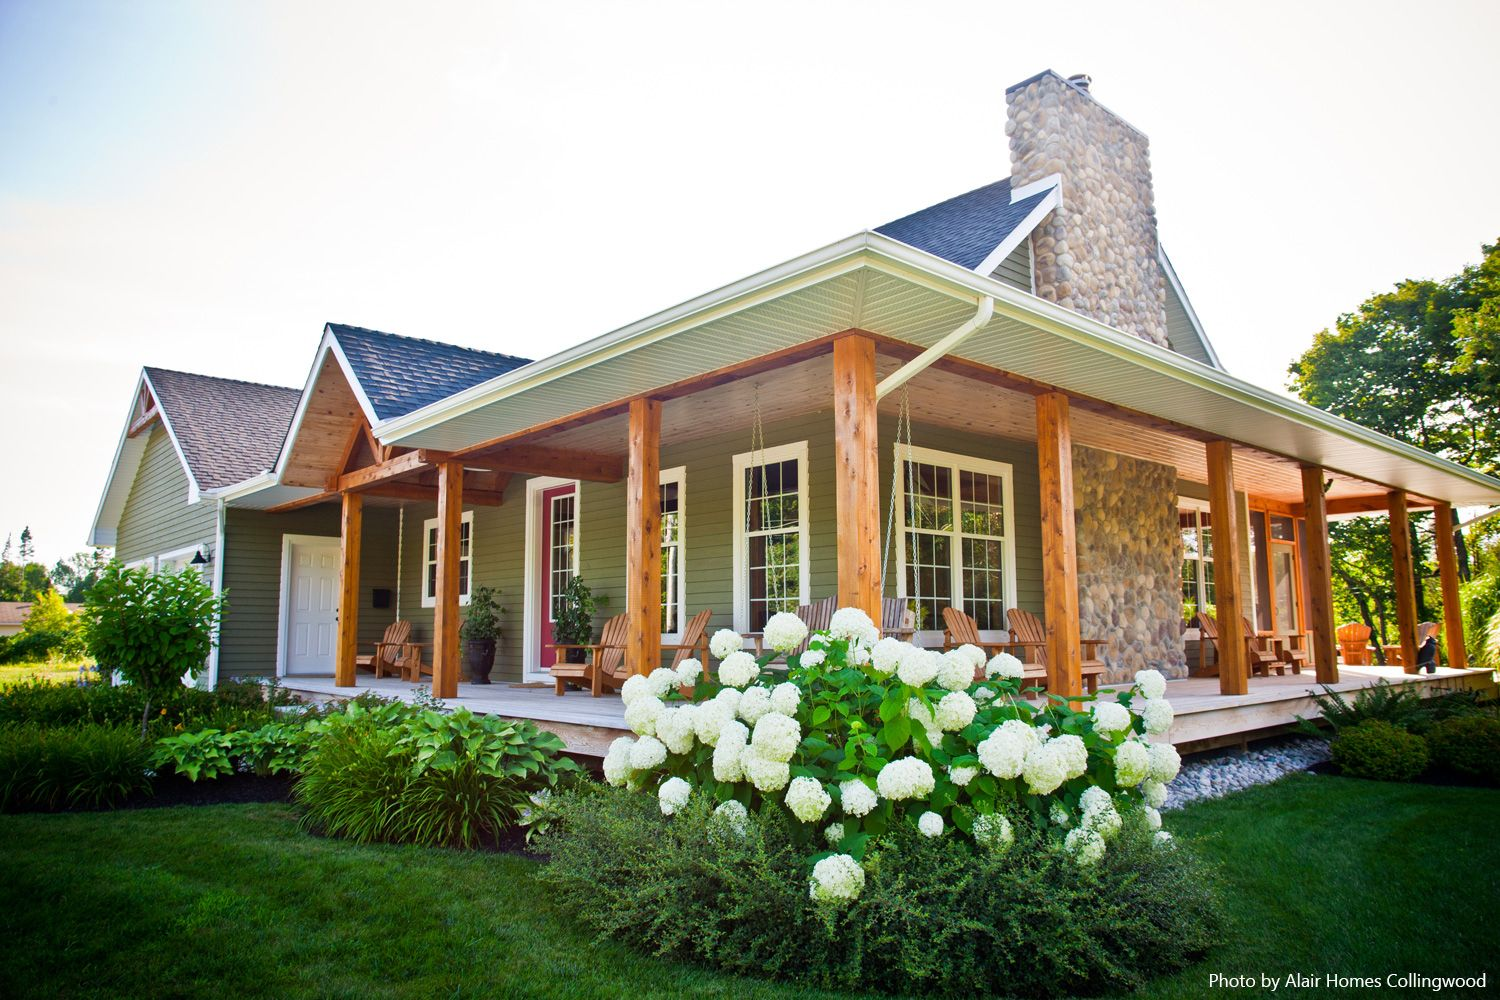 Breathtaking! What beauty this home has to offer, from a stone covered chimney to a red entry door, and a southern style porch, the exterior sure does shine. If you're thinking about building your own deck, click the pin to see our tips and advice for this type of project.